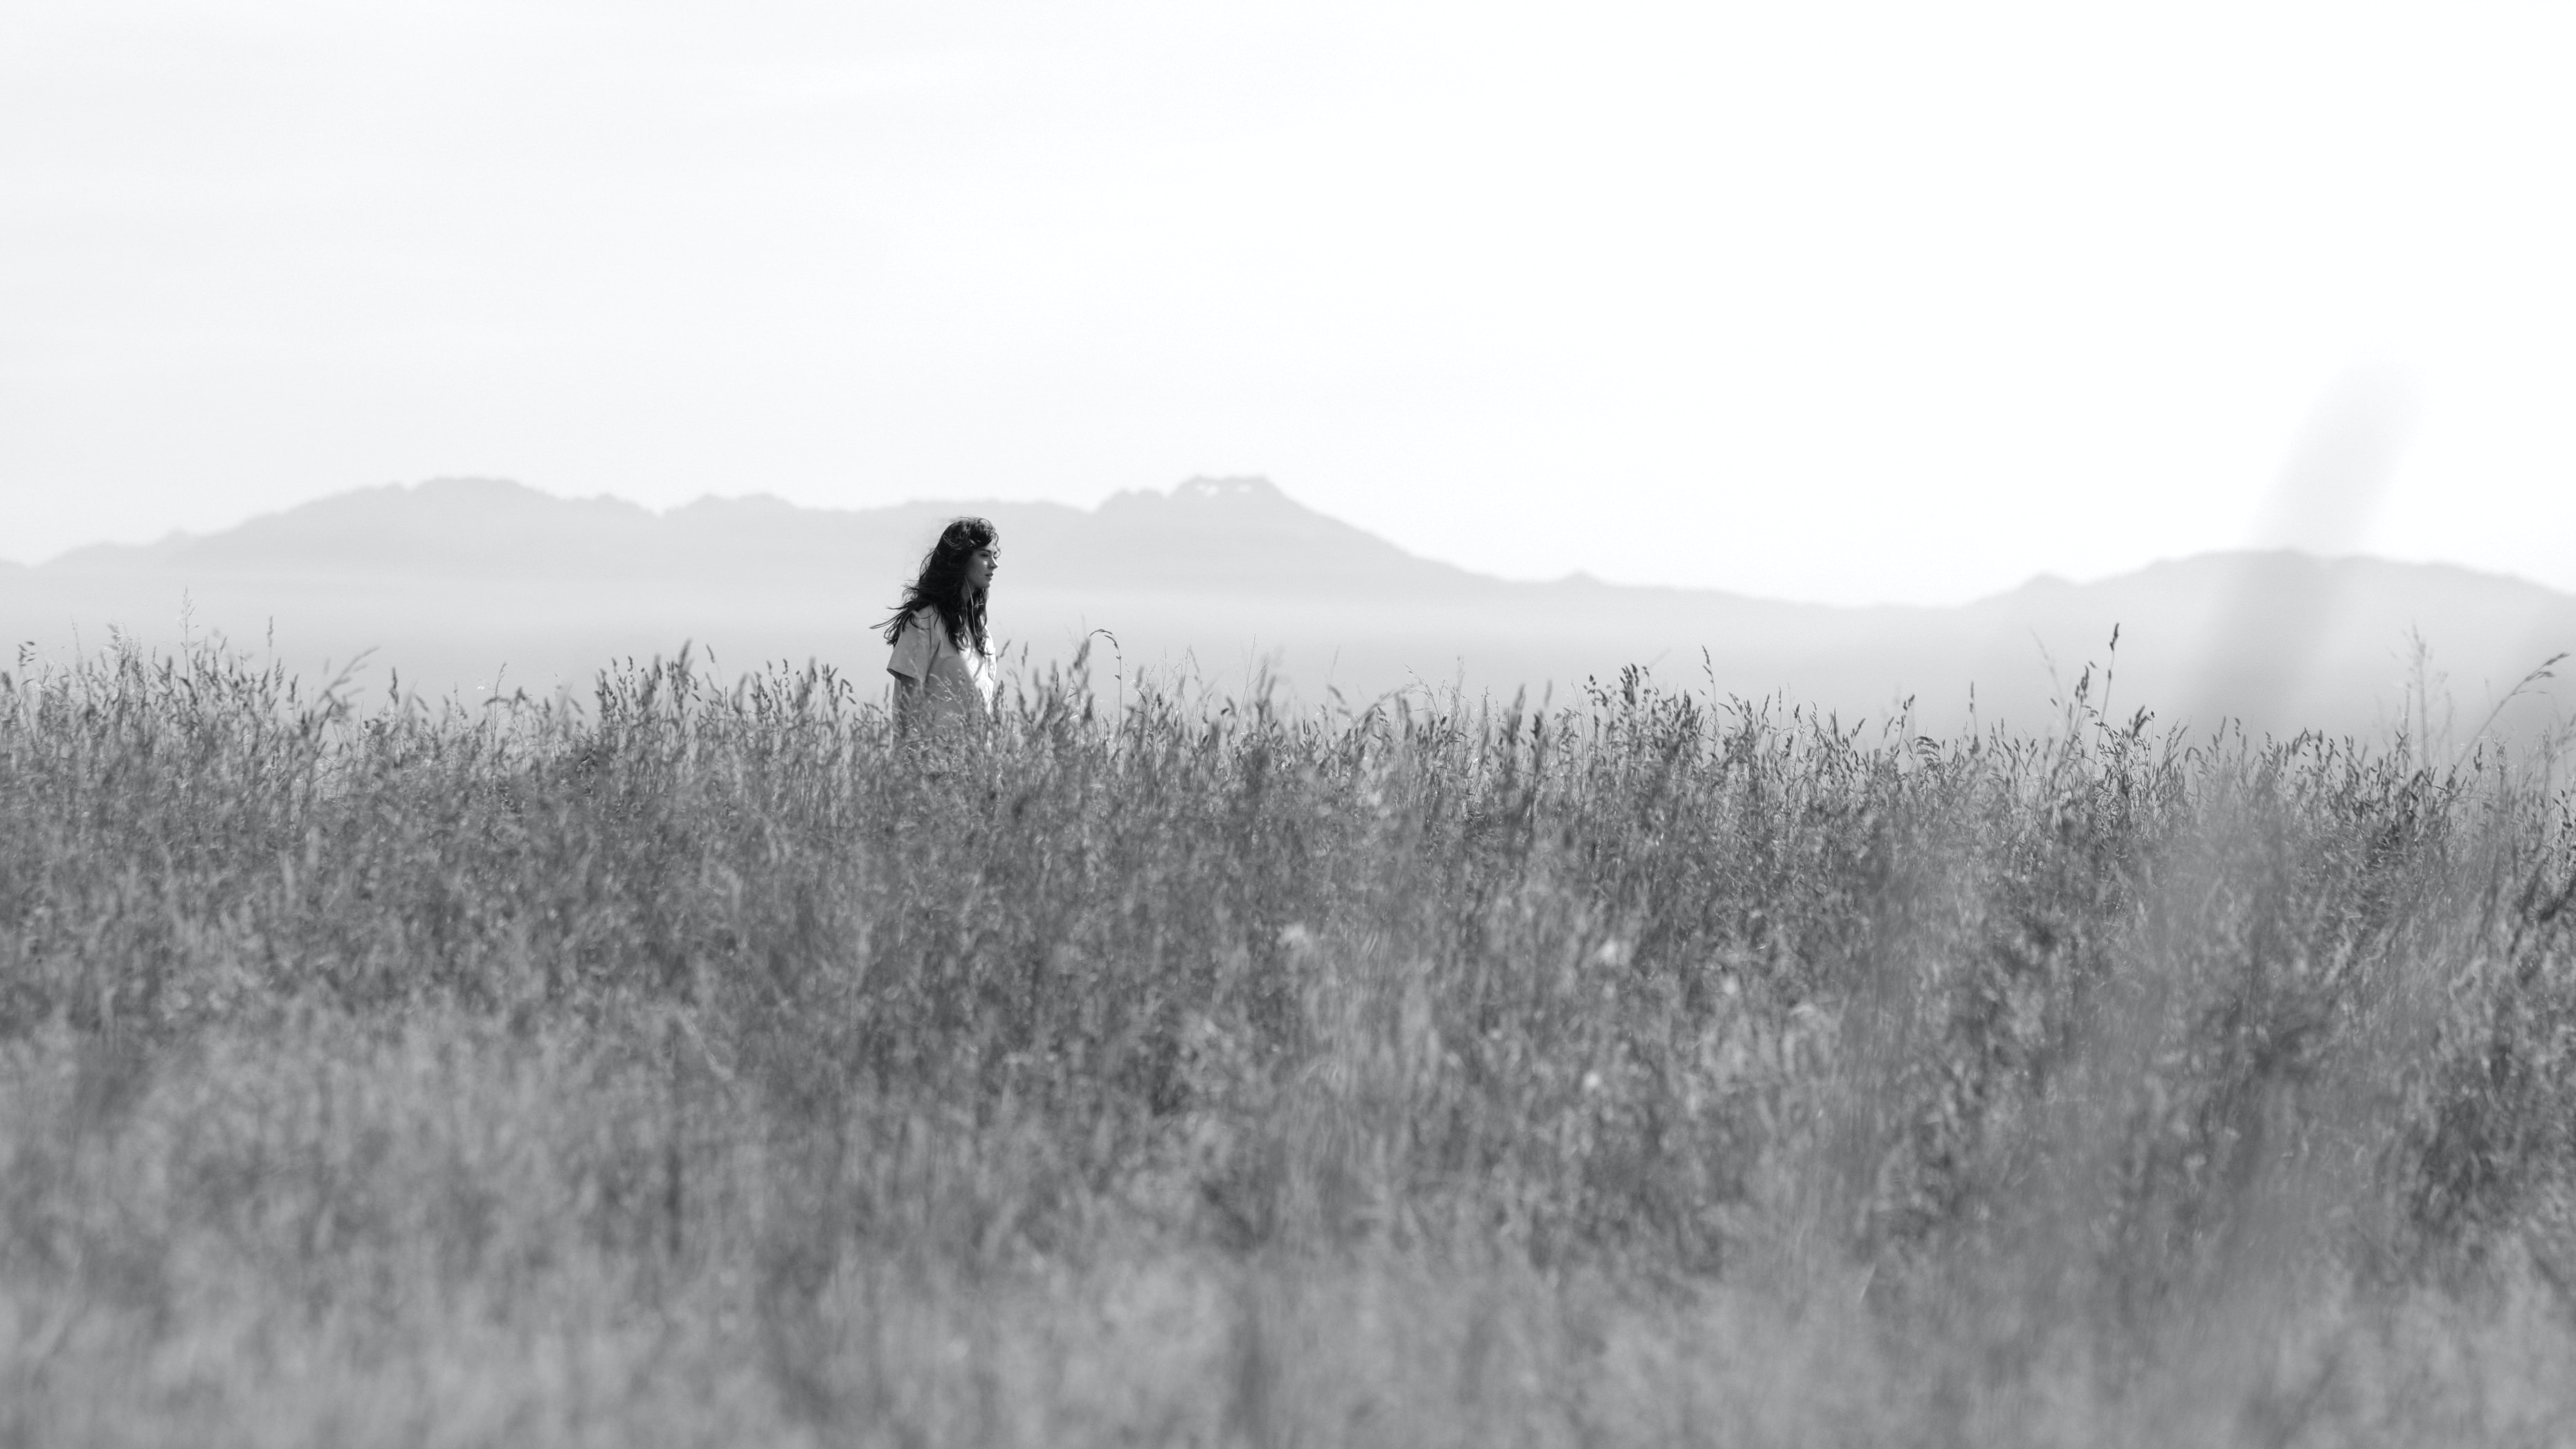 Woman walks through a field of tall grass in nature